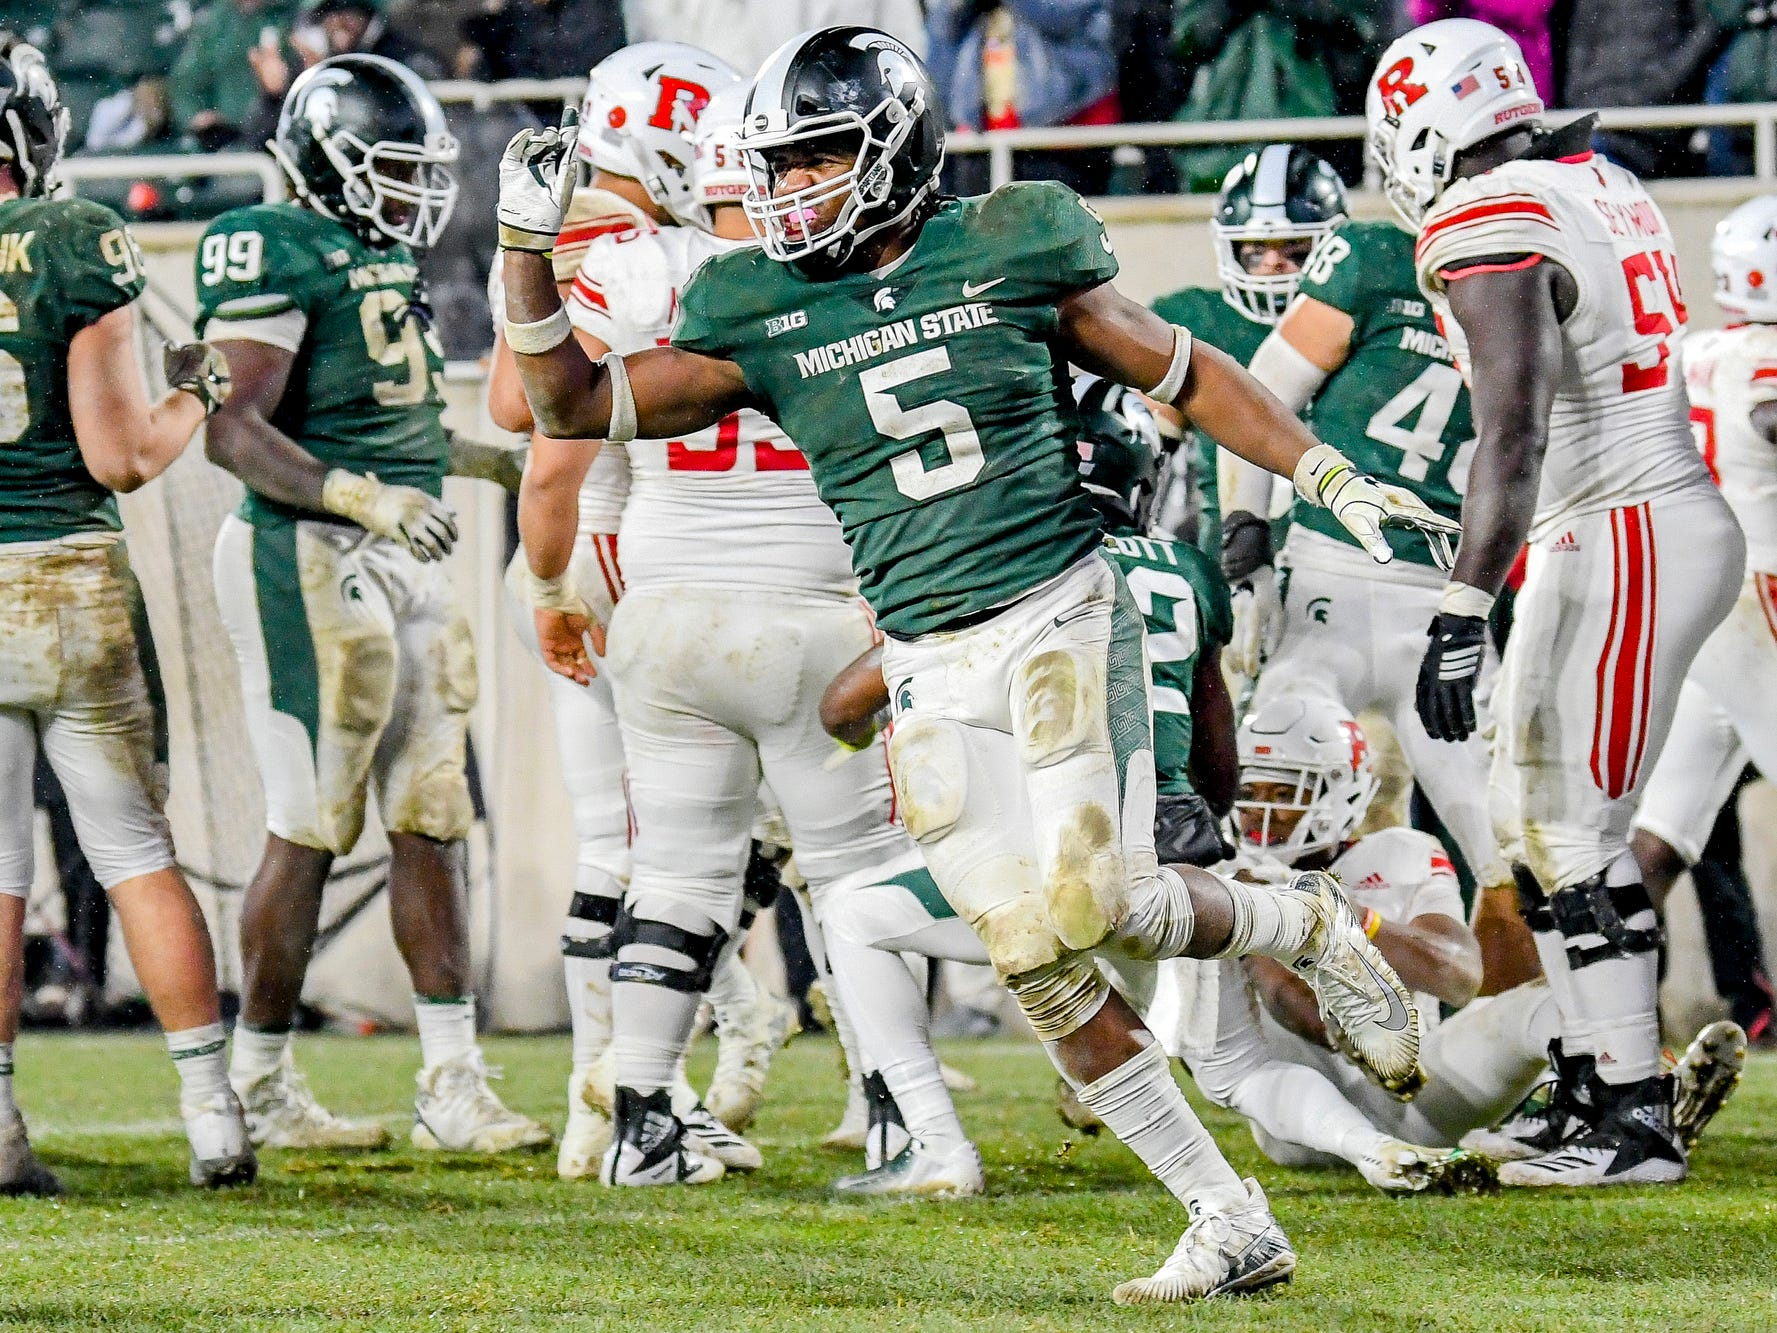 Michigan State's Andrew Dowell celebrates after a defensive stop during the fourth quarter on Saturday, Nov. 24, 2018, at Spartan Stadium in East Lansing.